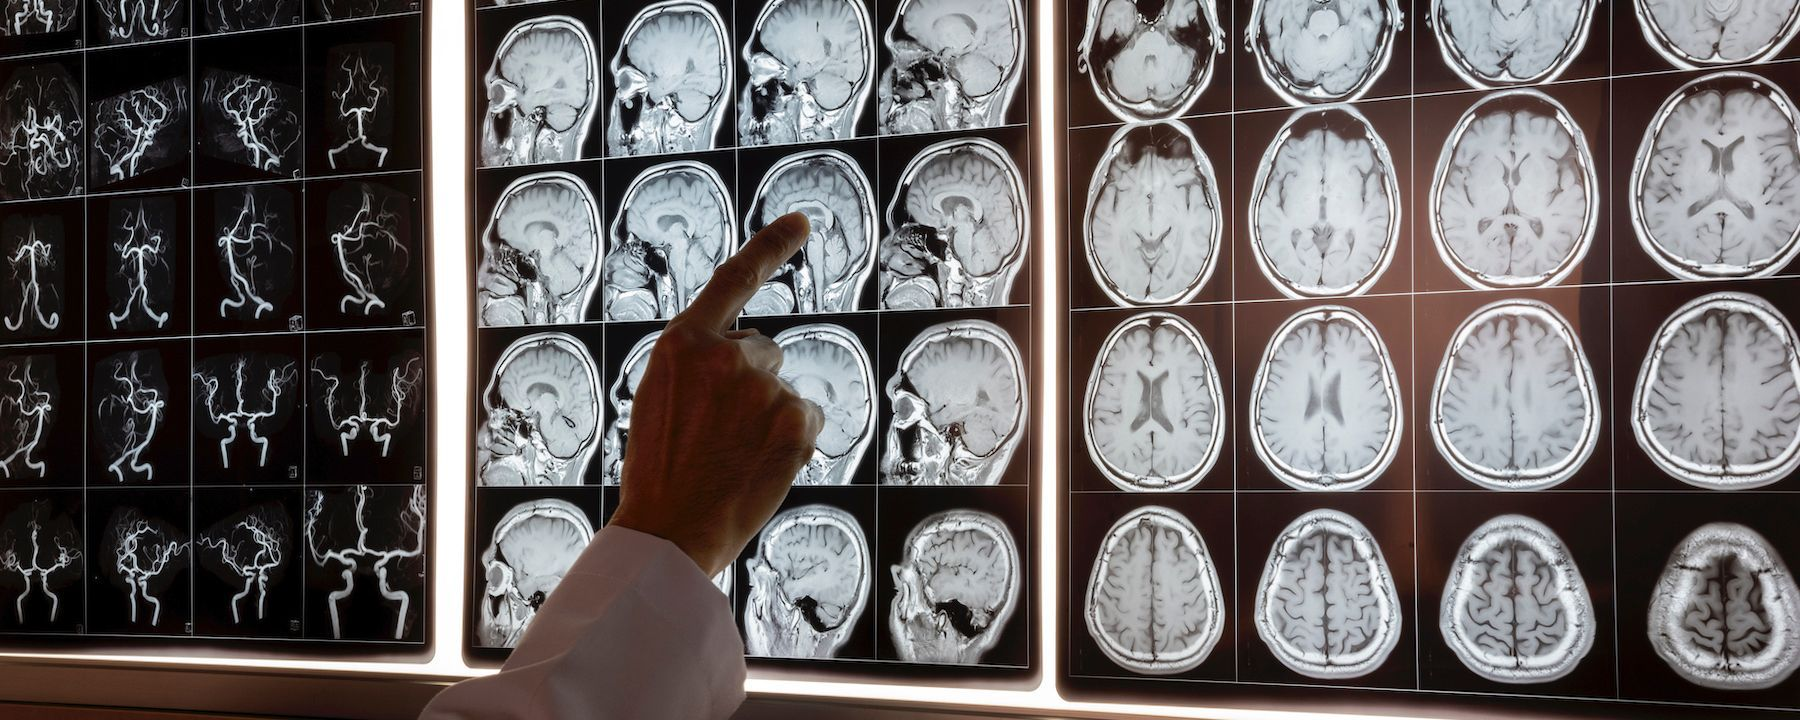 Biogen, Eisai End Two Late-Stage Trials for Alzheimer's Treatment